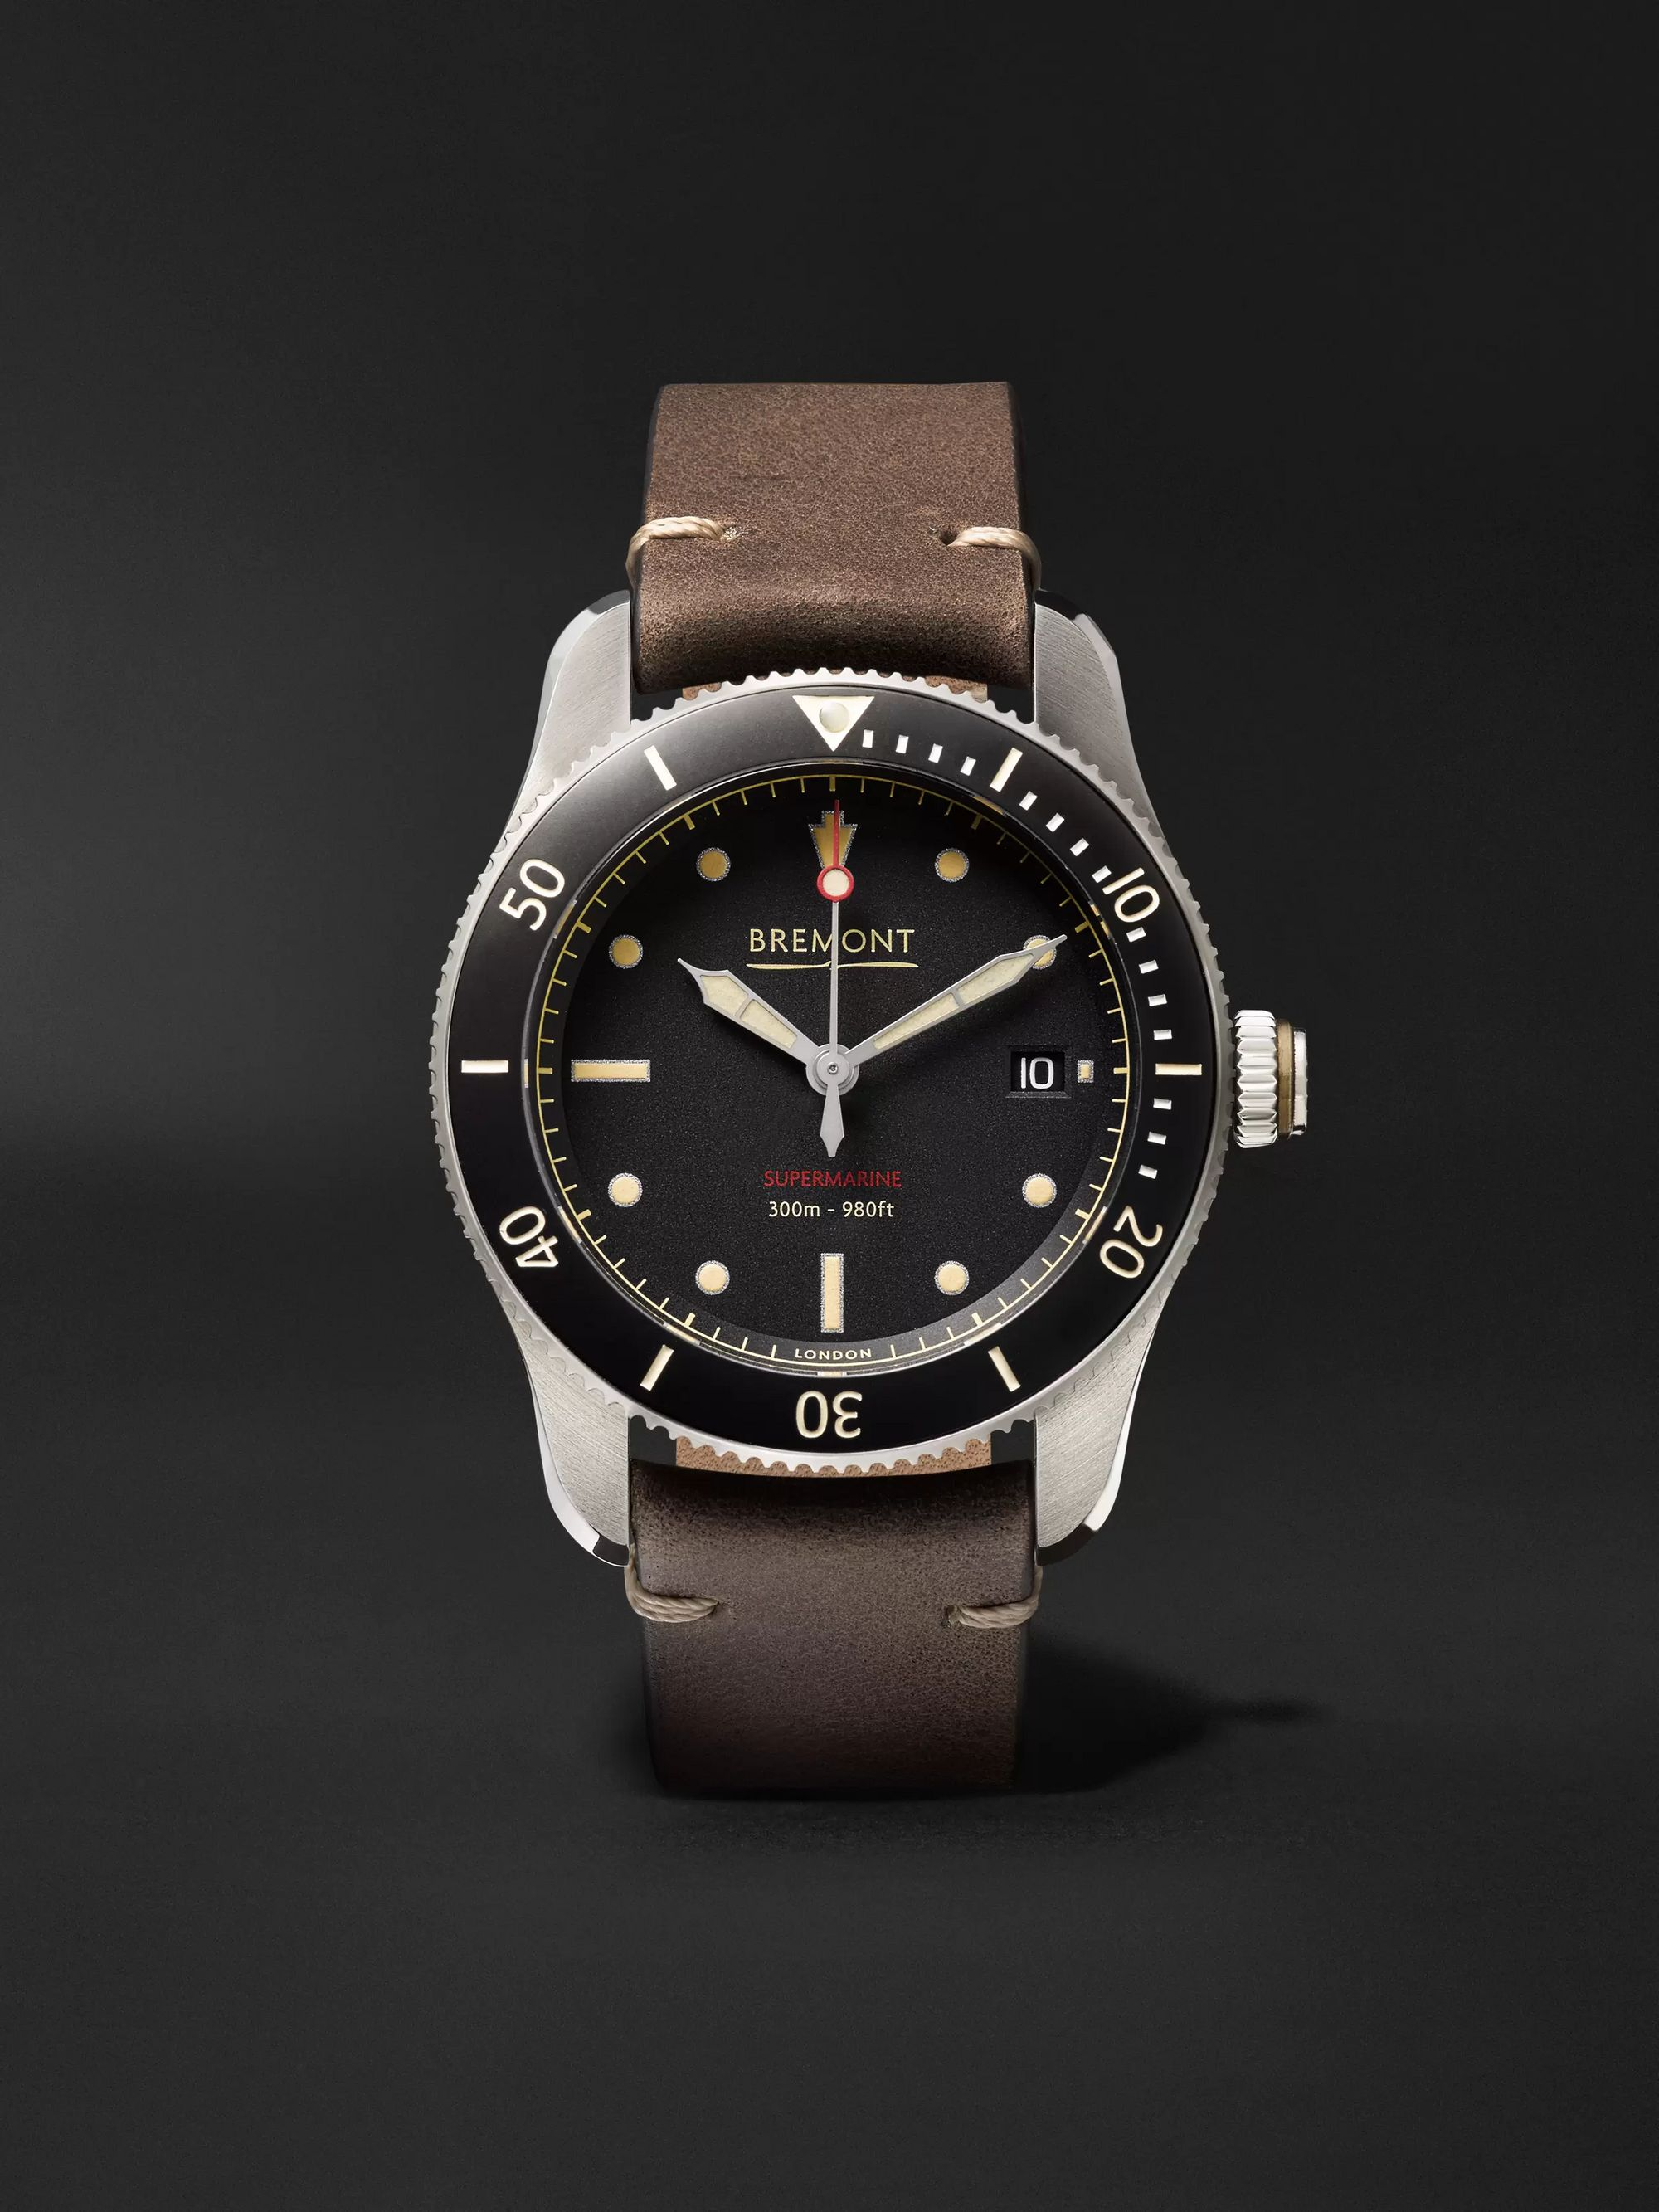 Bremont Supermarine Type 301 Automatic Chronometer 40mm Stainless Steel and Leather Watch, Ref. No. S301/BK